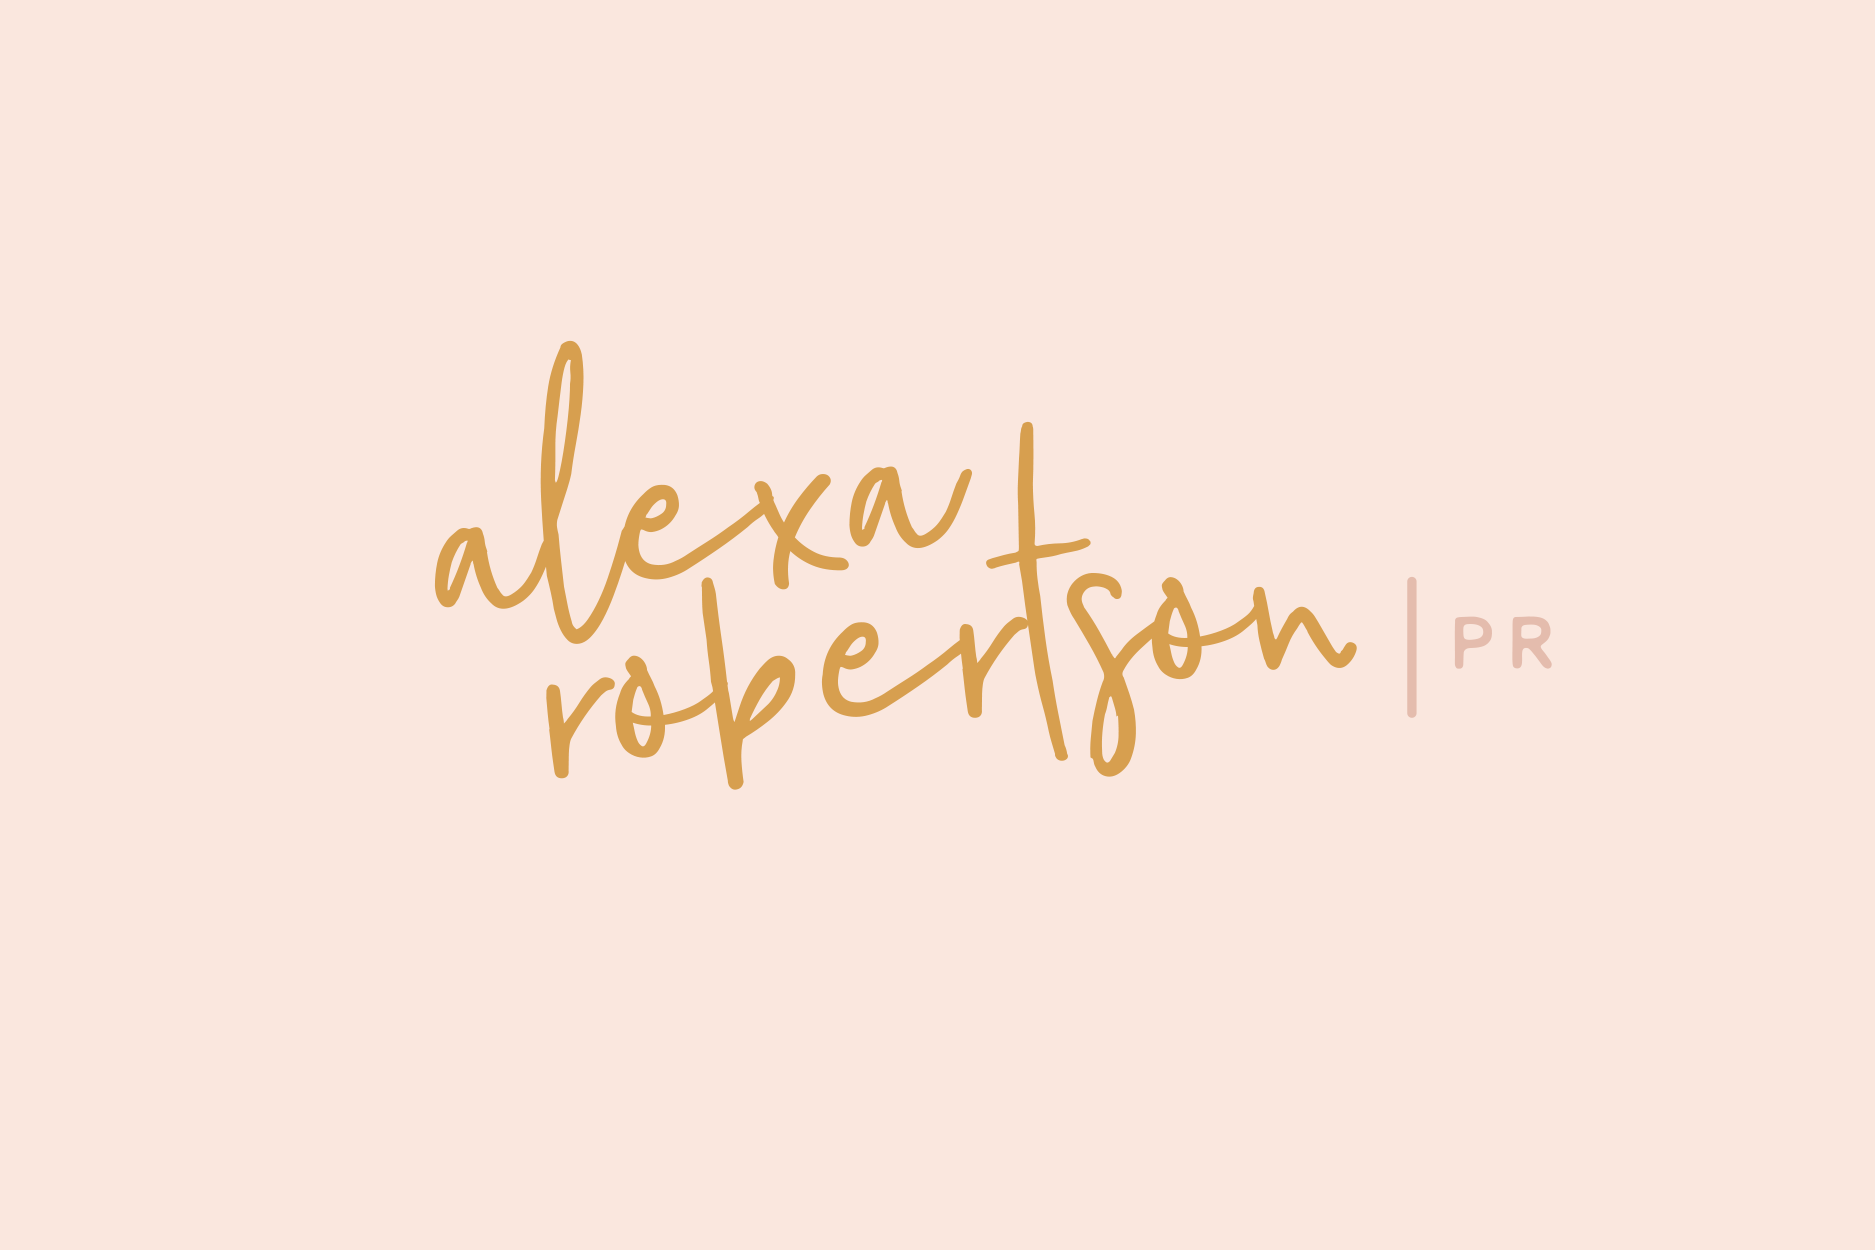 Final logo design for Alexa Robertson, freelance PR specialising in the classical music industry  - Designed by Wiltshire-based graphic designer, Kaye Huett